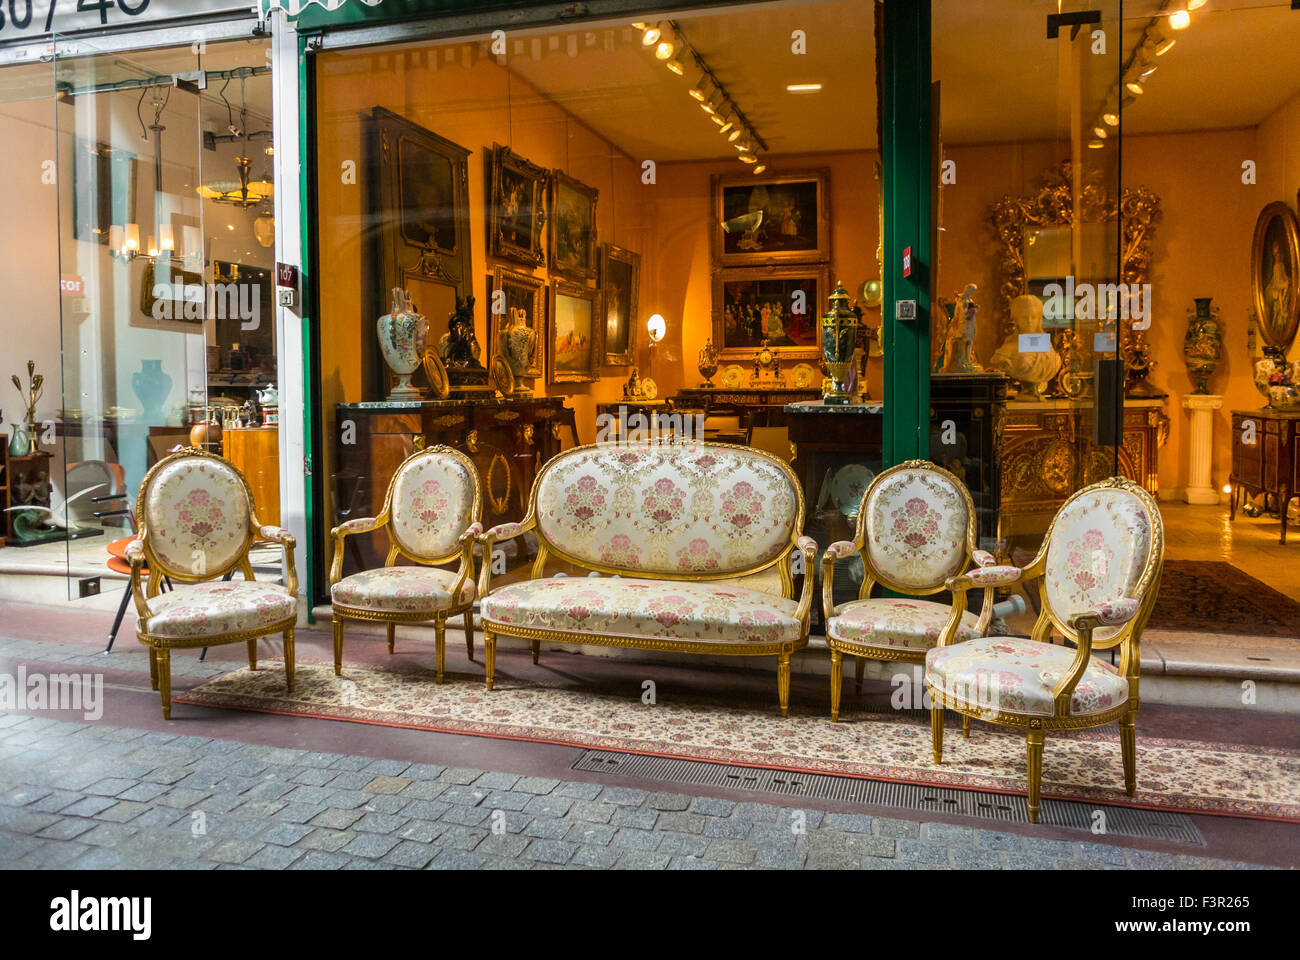 paris france french flea market les puces de paris saint ouen stock photo royalty free. Black Bedroom Furniture Sets. Home Design Ideas